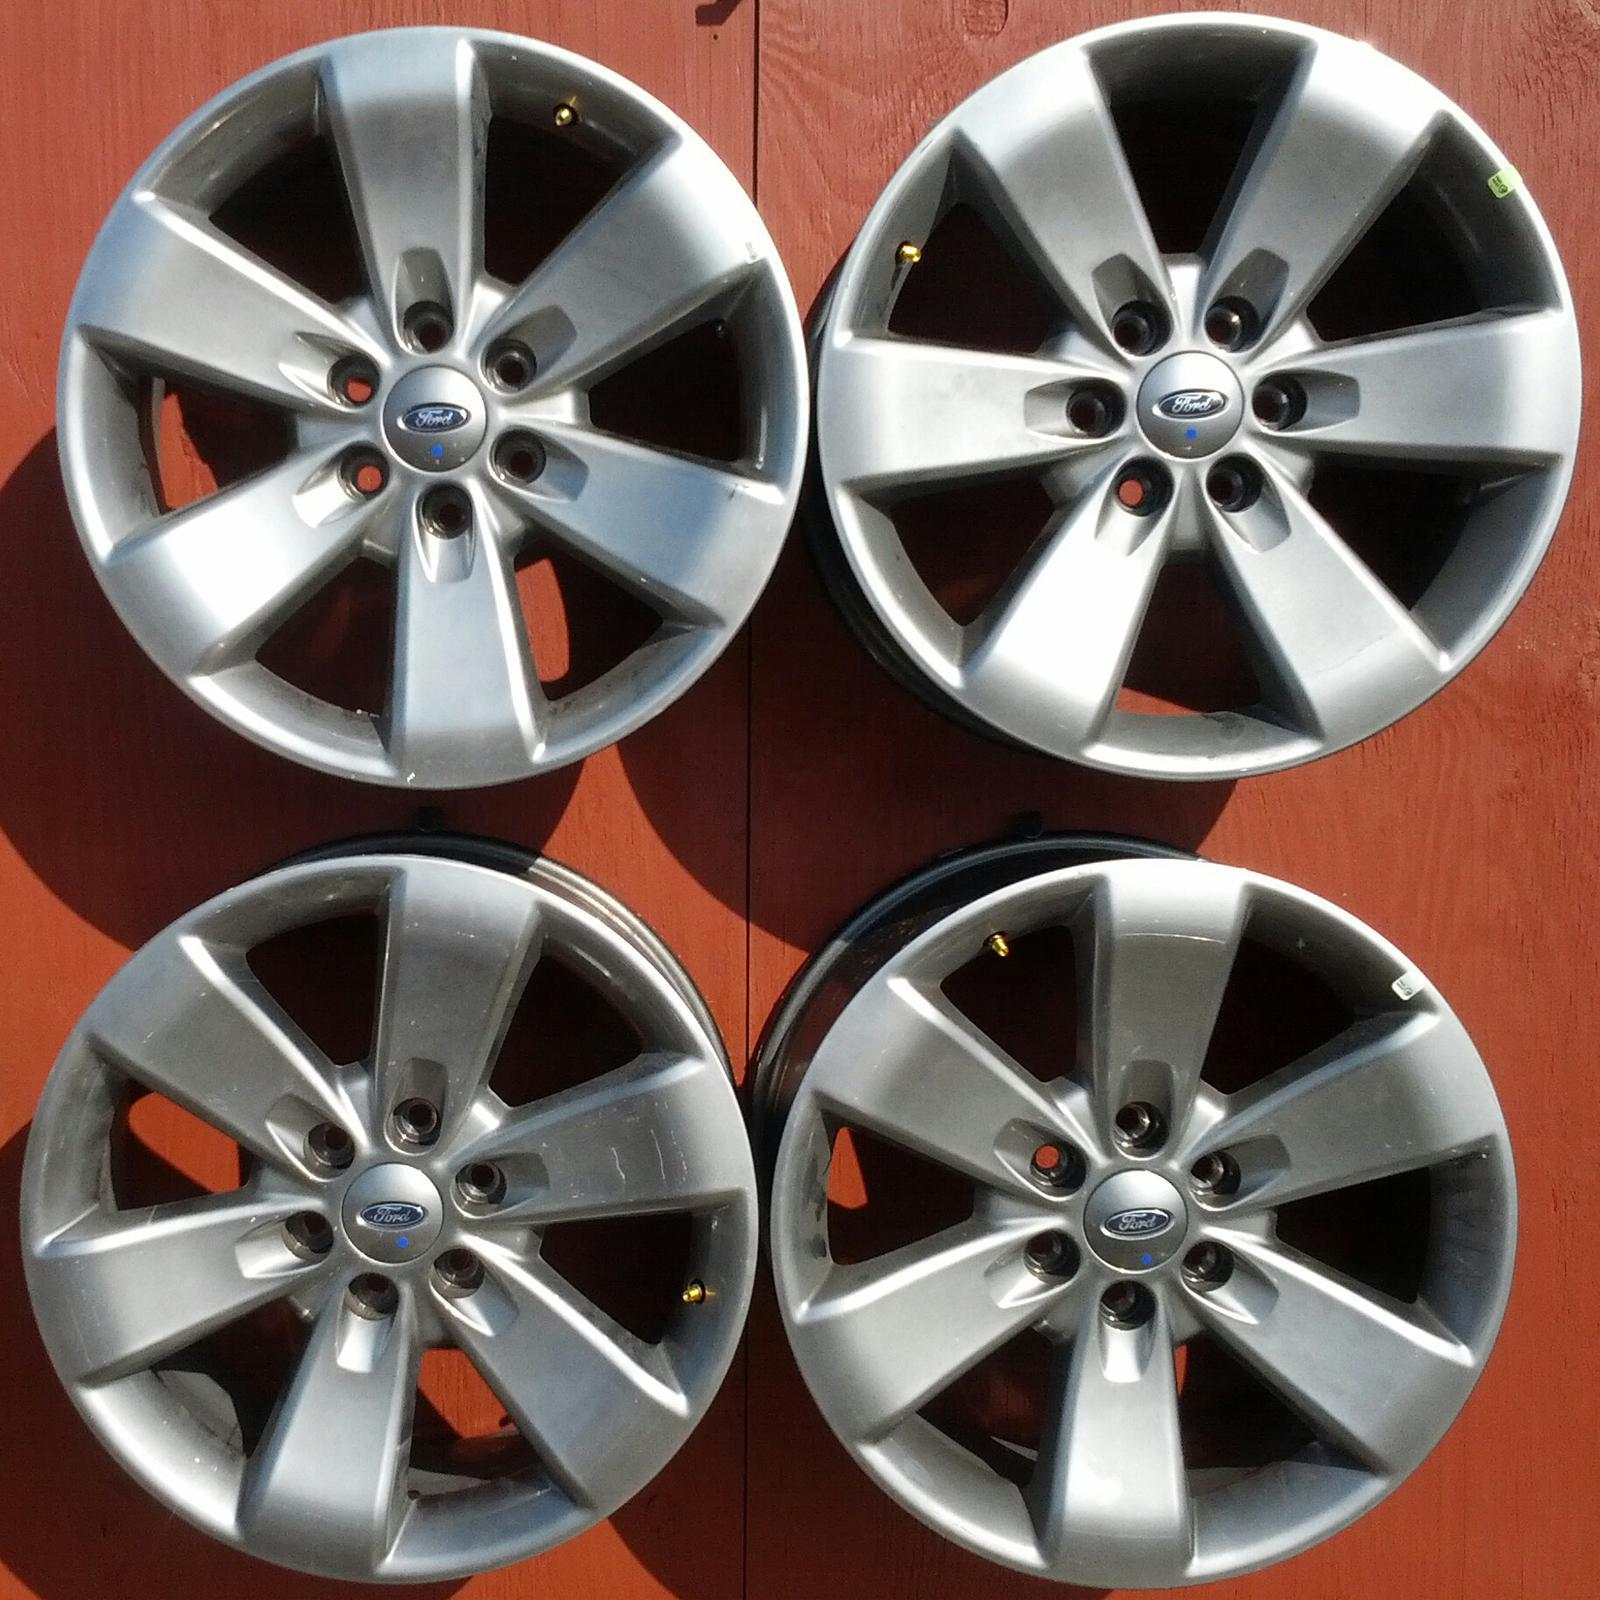 3833 Ford F150 Set Of 4 20 Inch Wheels For Sale In Marlow Ok 1955 F100 On Mcnair Tires Alignment 800 585 6247